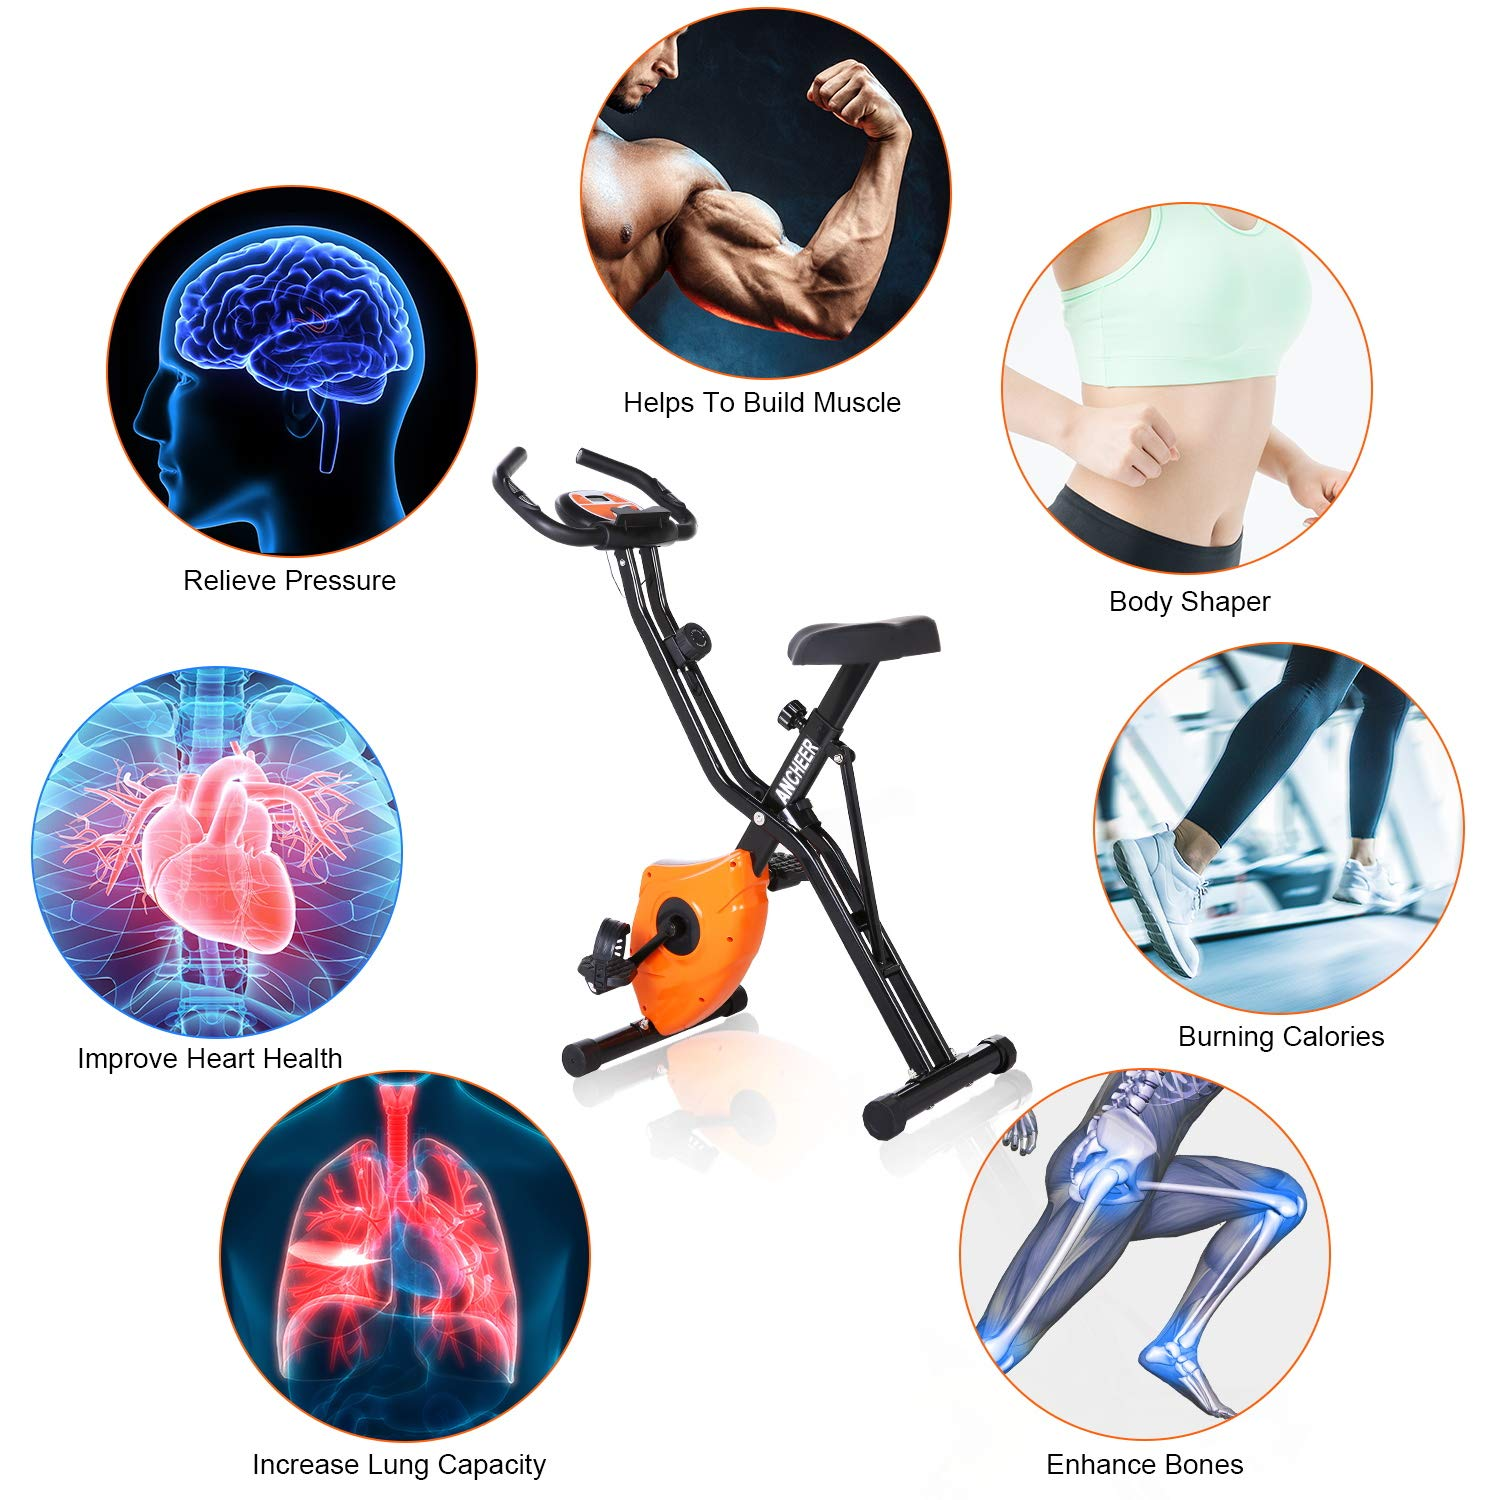 ANCHEER Folding Magnetic Exercise Bike, 10-Level Adjustable Stationary Bike - Tablet Stand & Large and Comfortable Seat by ANCHEER (Image #5)